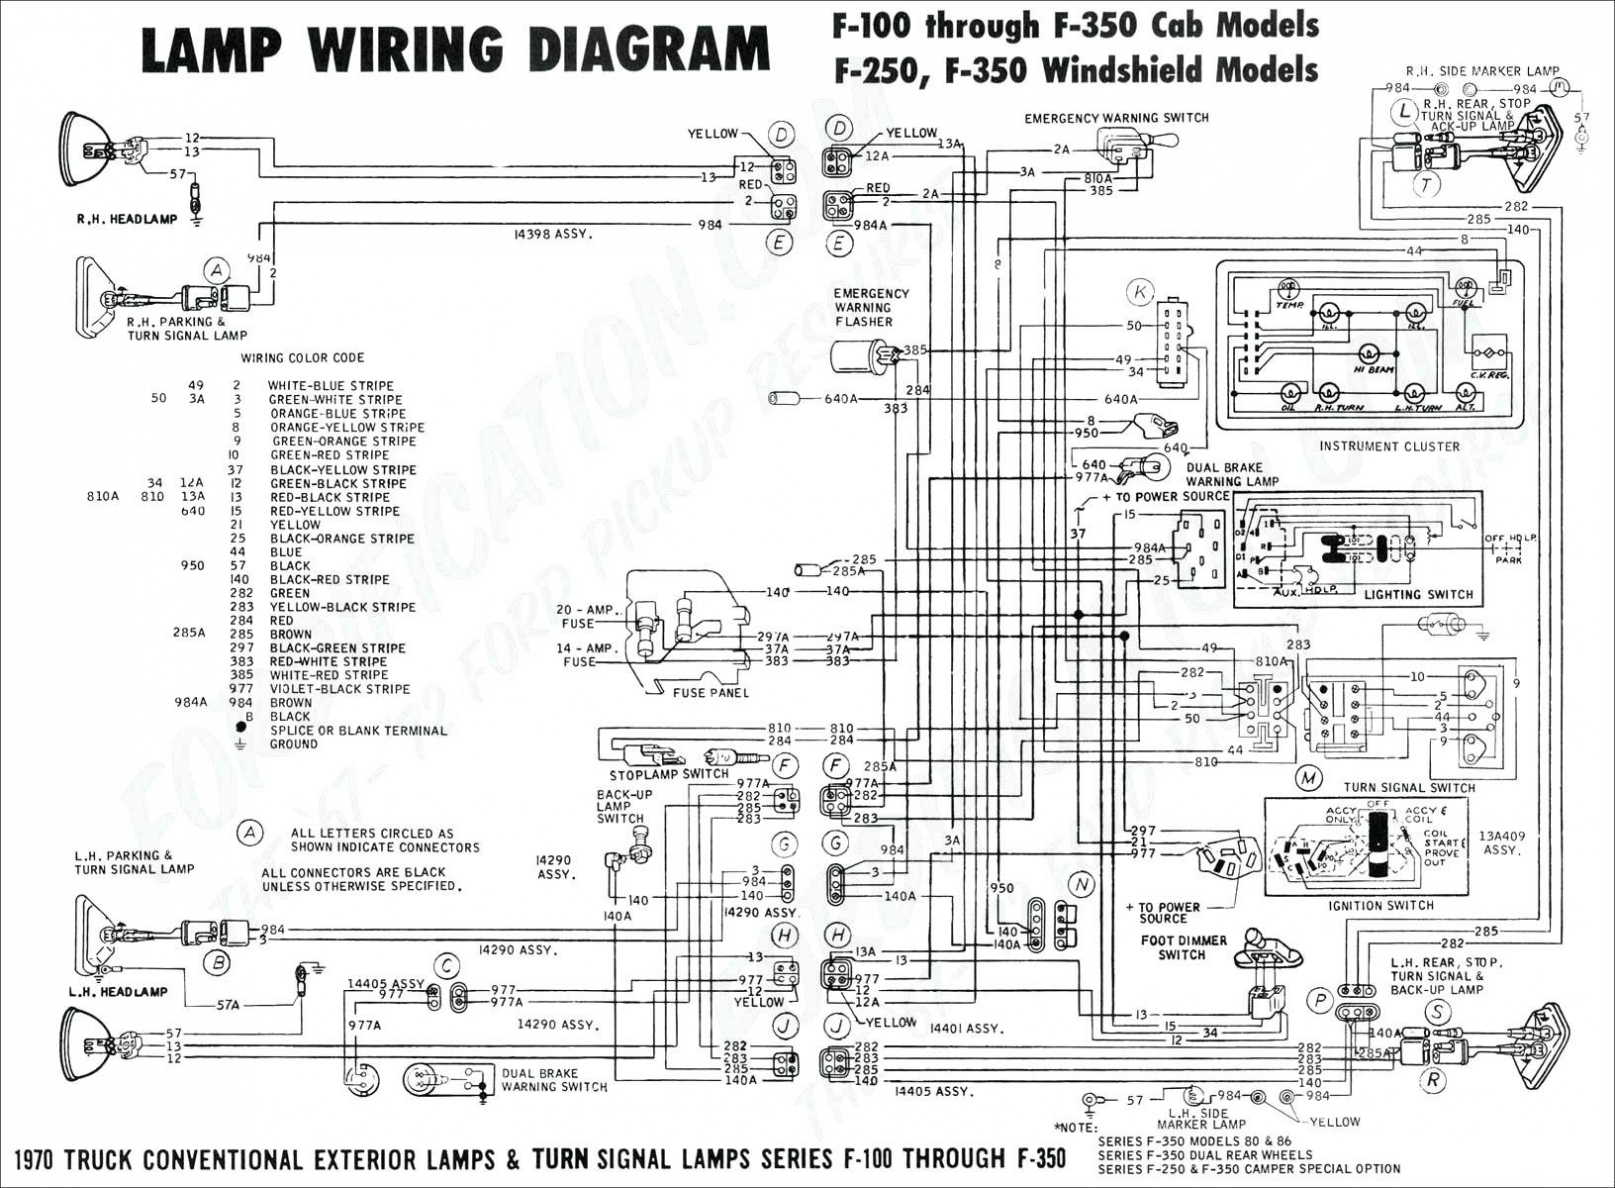 99 ford f 350 wiring schematics repair manual 1999 Ford F350 Wiring Schematics Manuals